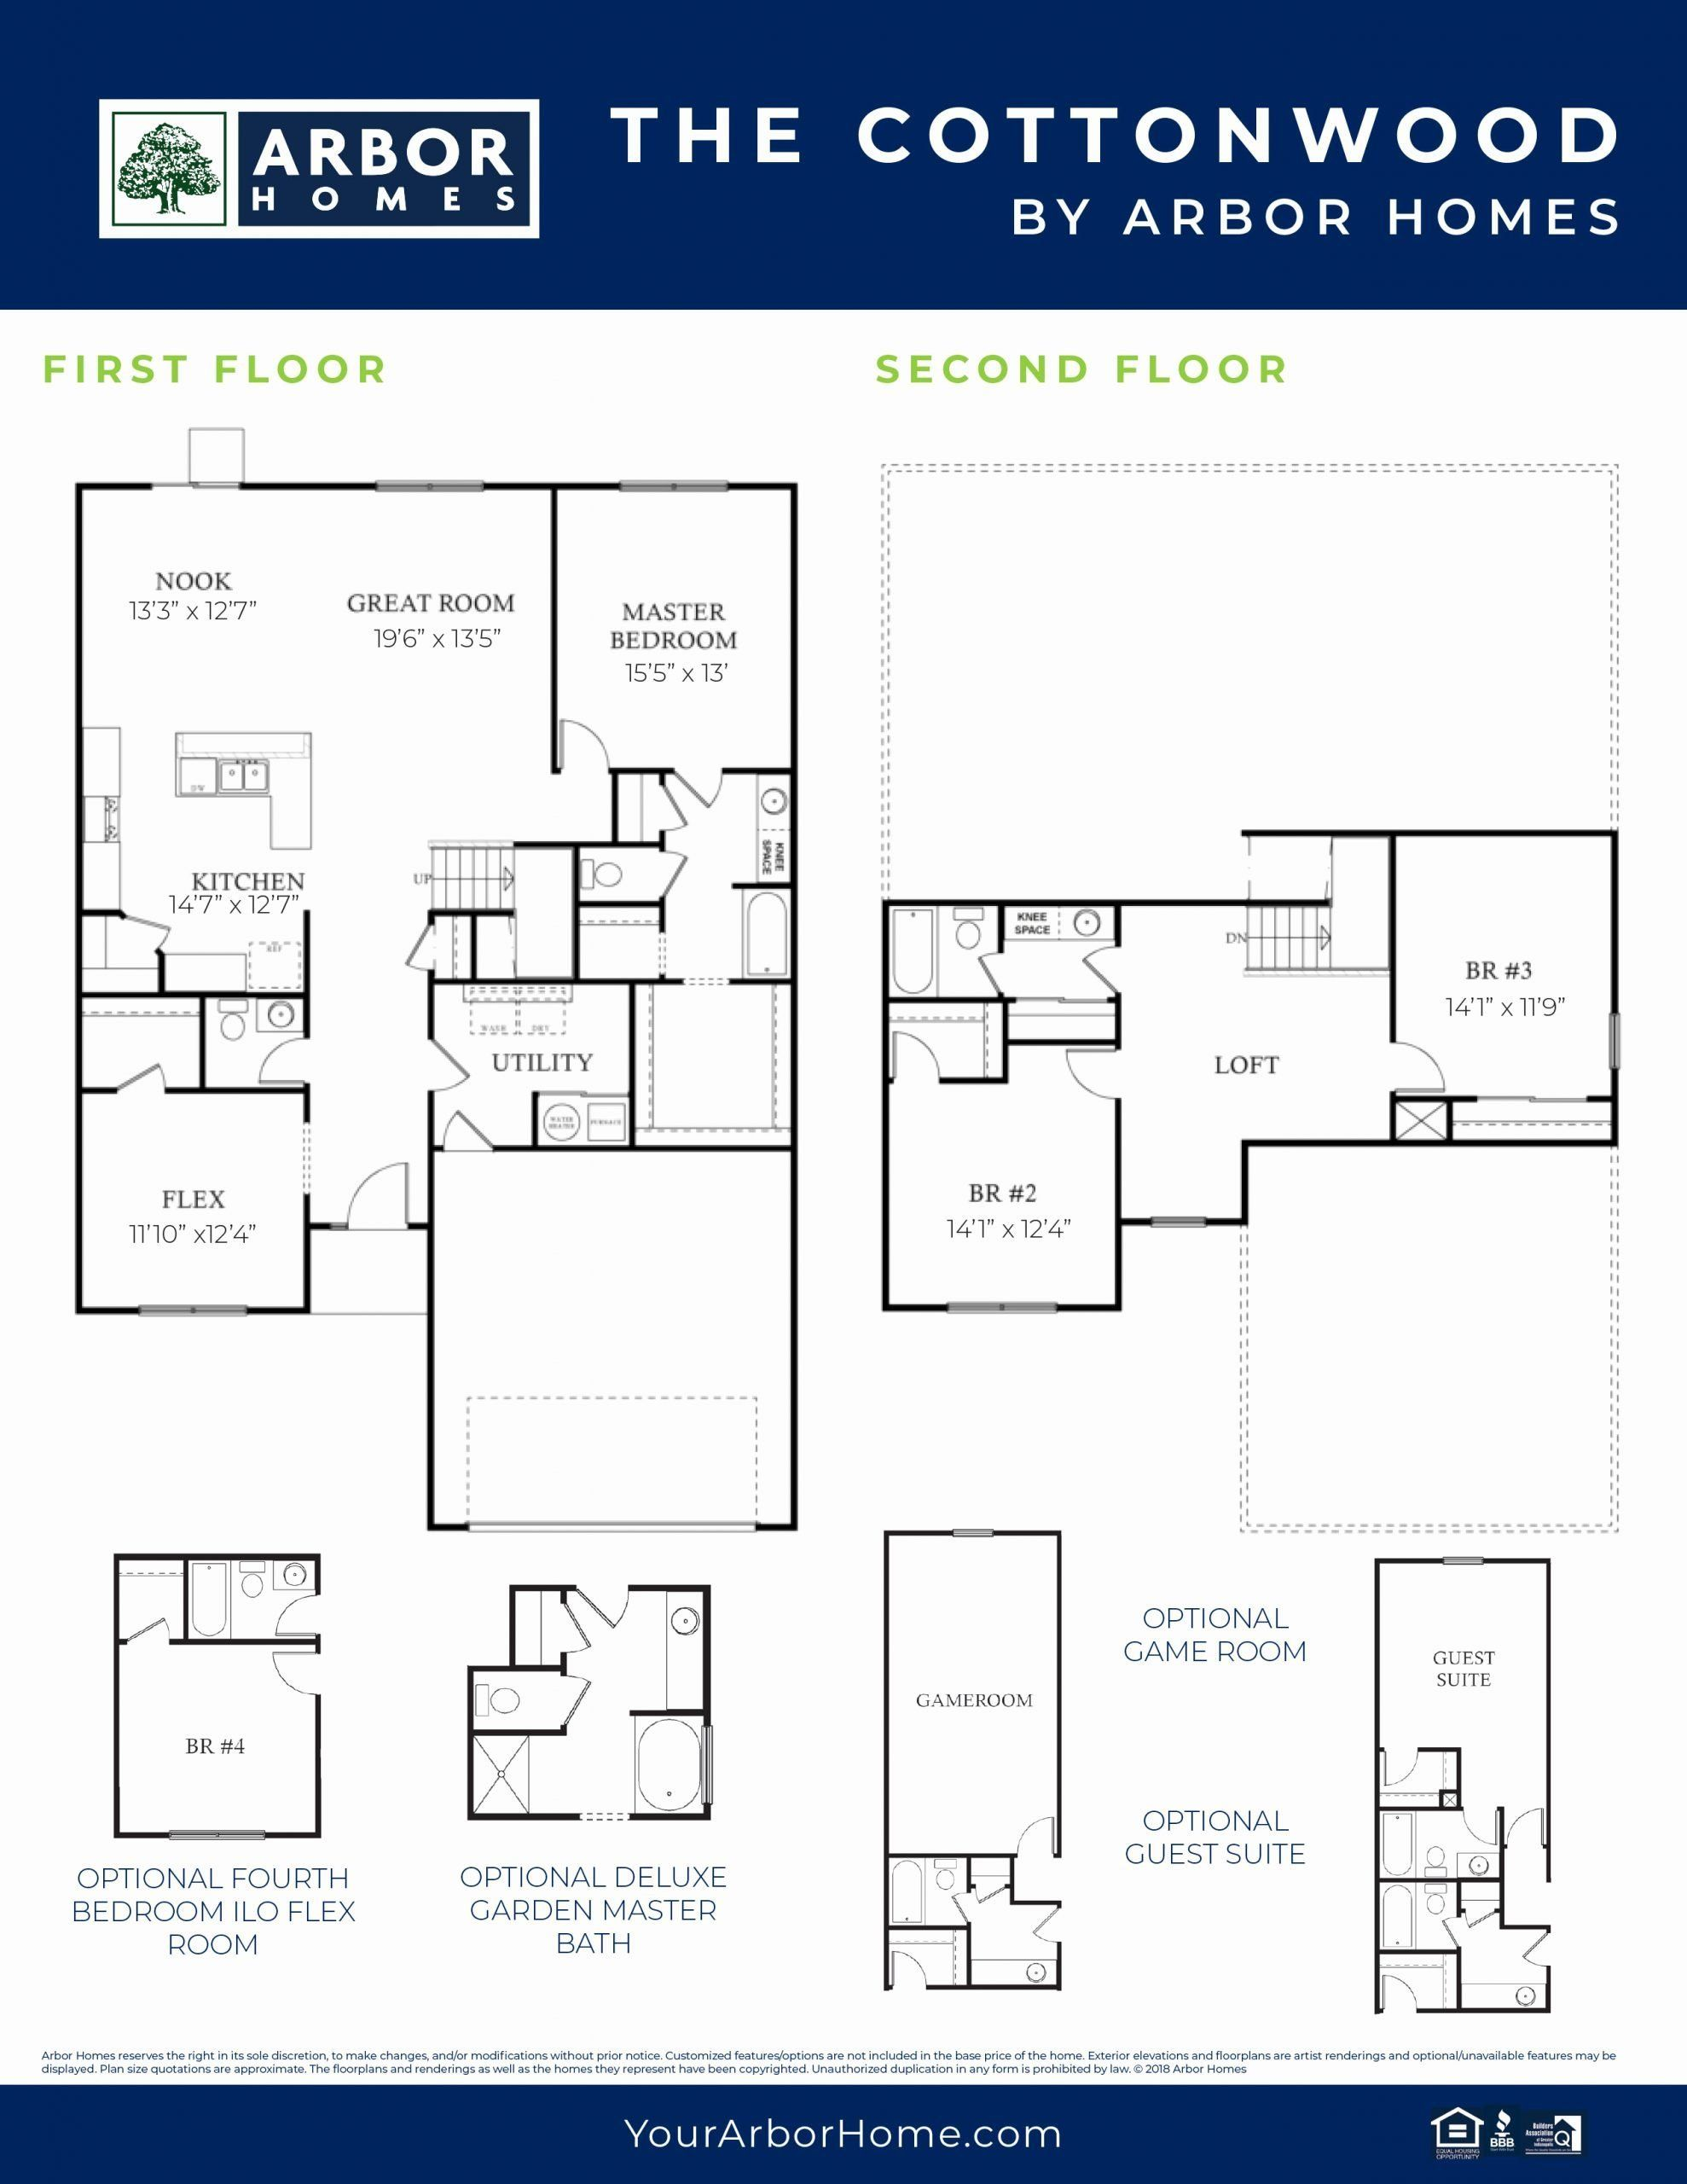 Arbor Homes Design Center New The Cottonwood 2 House Design Design Center Design